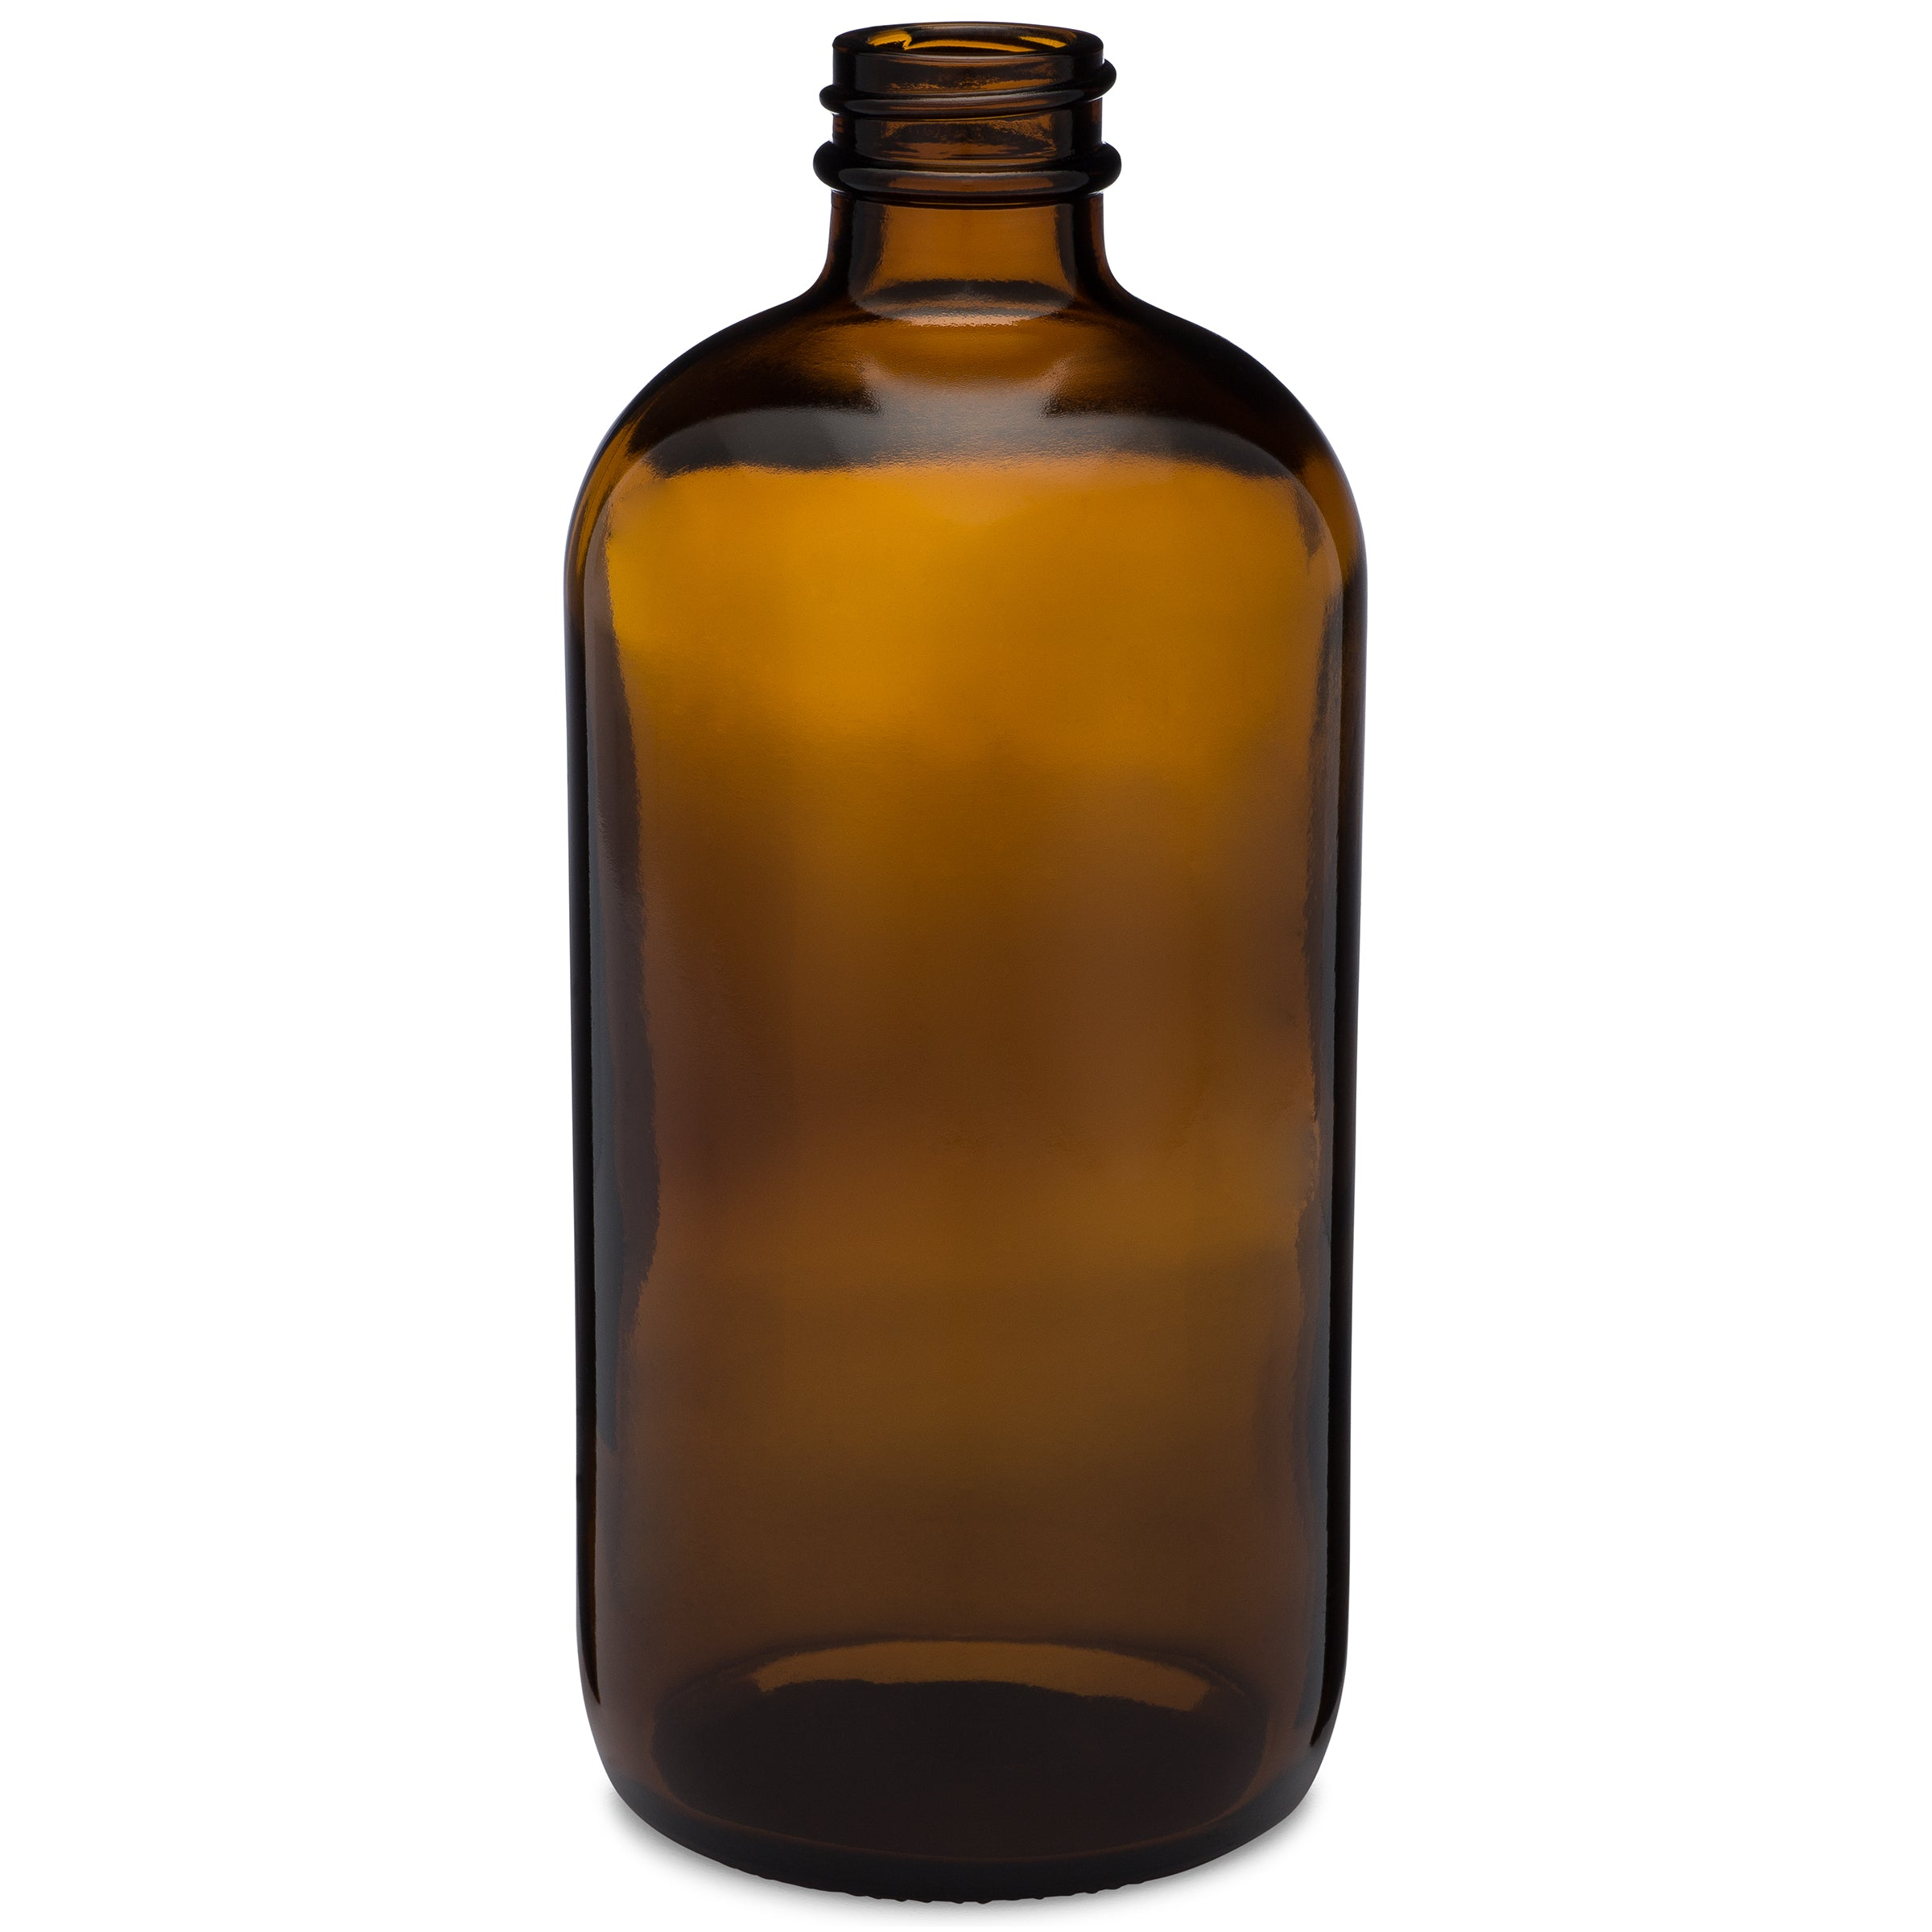 16oz/480ml Amber Boston Round Bottle